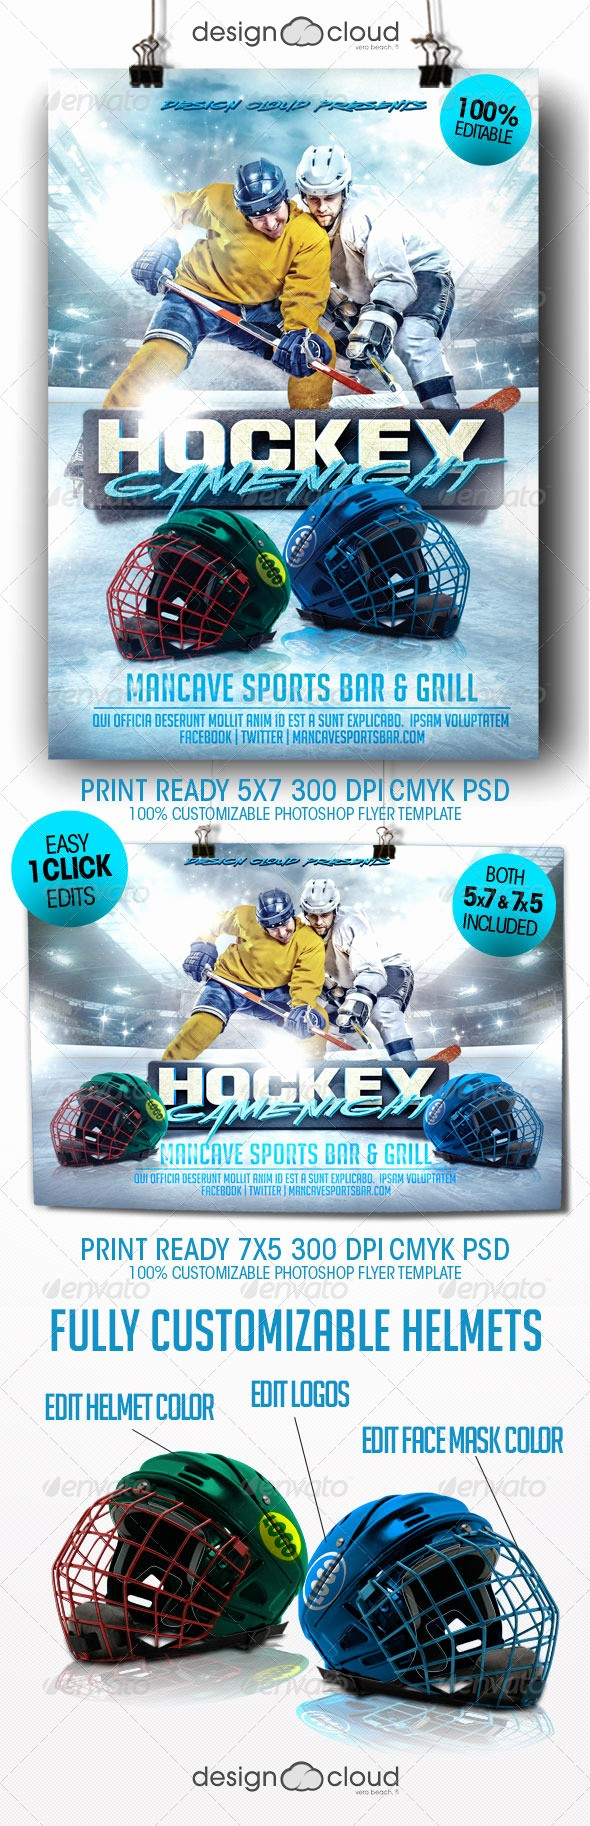 Free Game Night Flyer Template Best Of Hockey Game Night Flyer Template